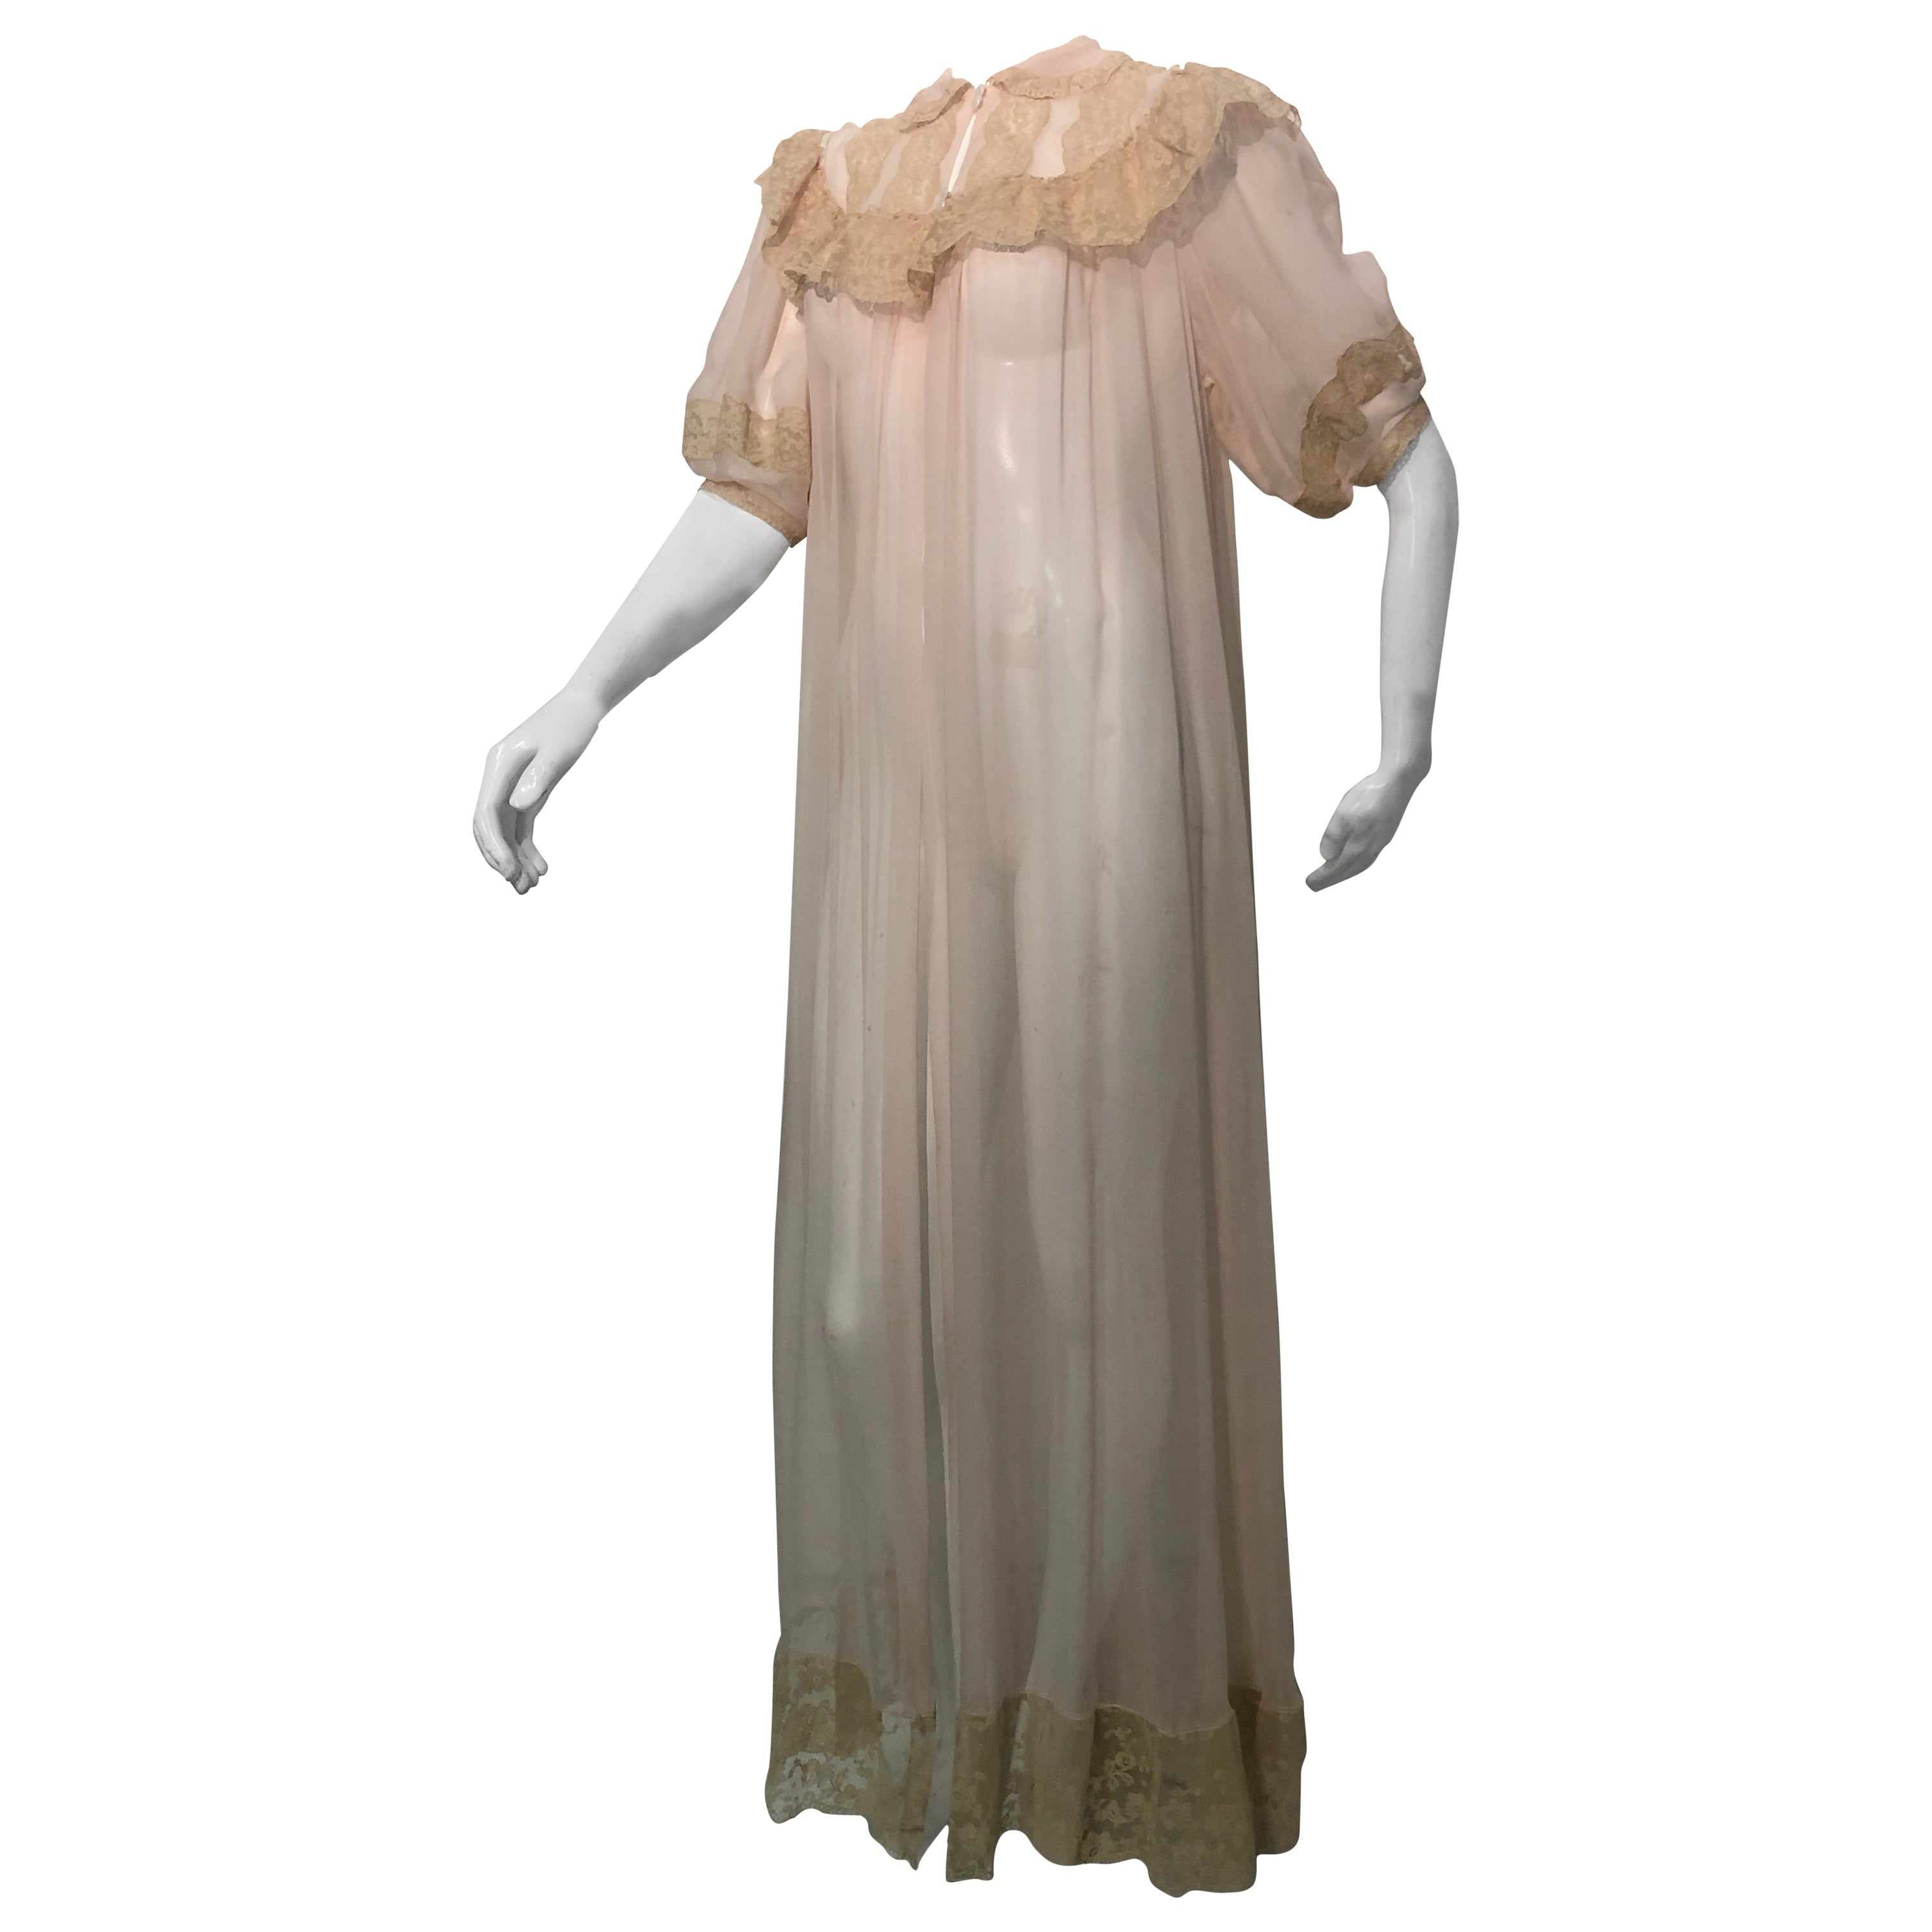 8aa145a80 1930 Pale Pink Silk Chiffon Peignoir with Ecru Lace Decolletage For Sale at  1stdibs